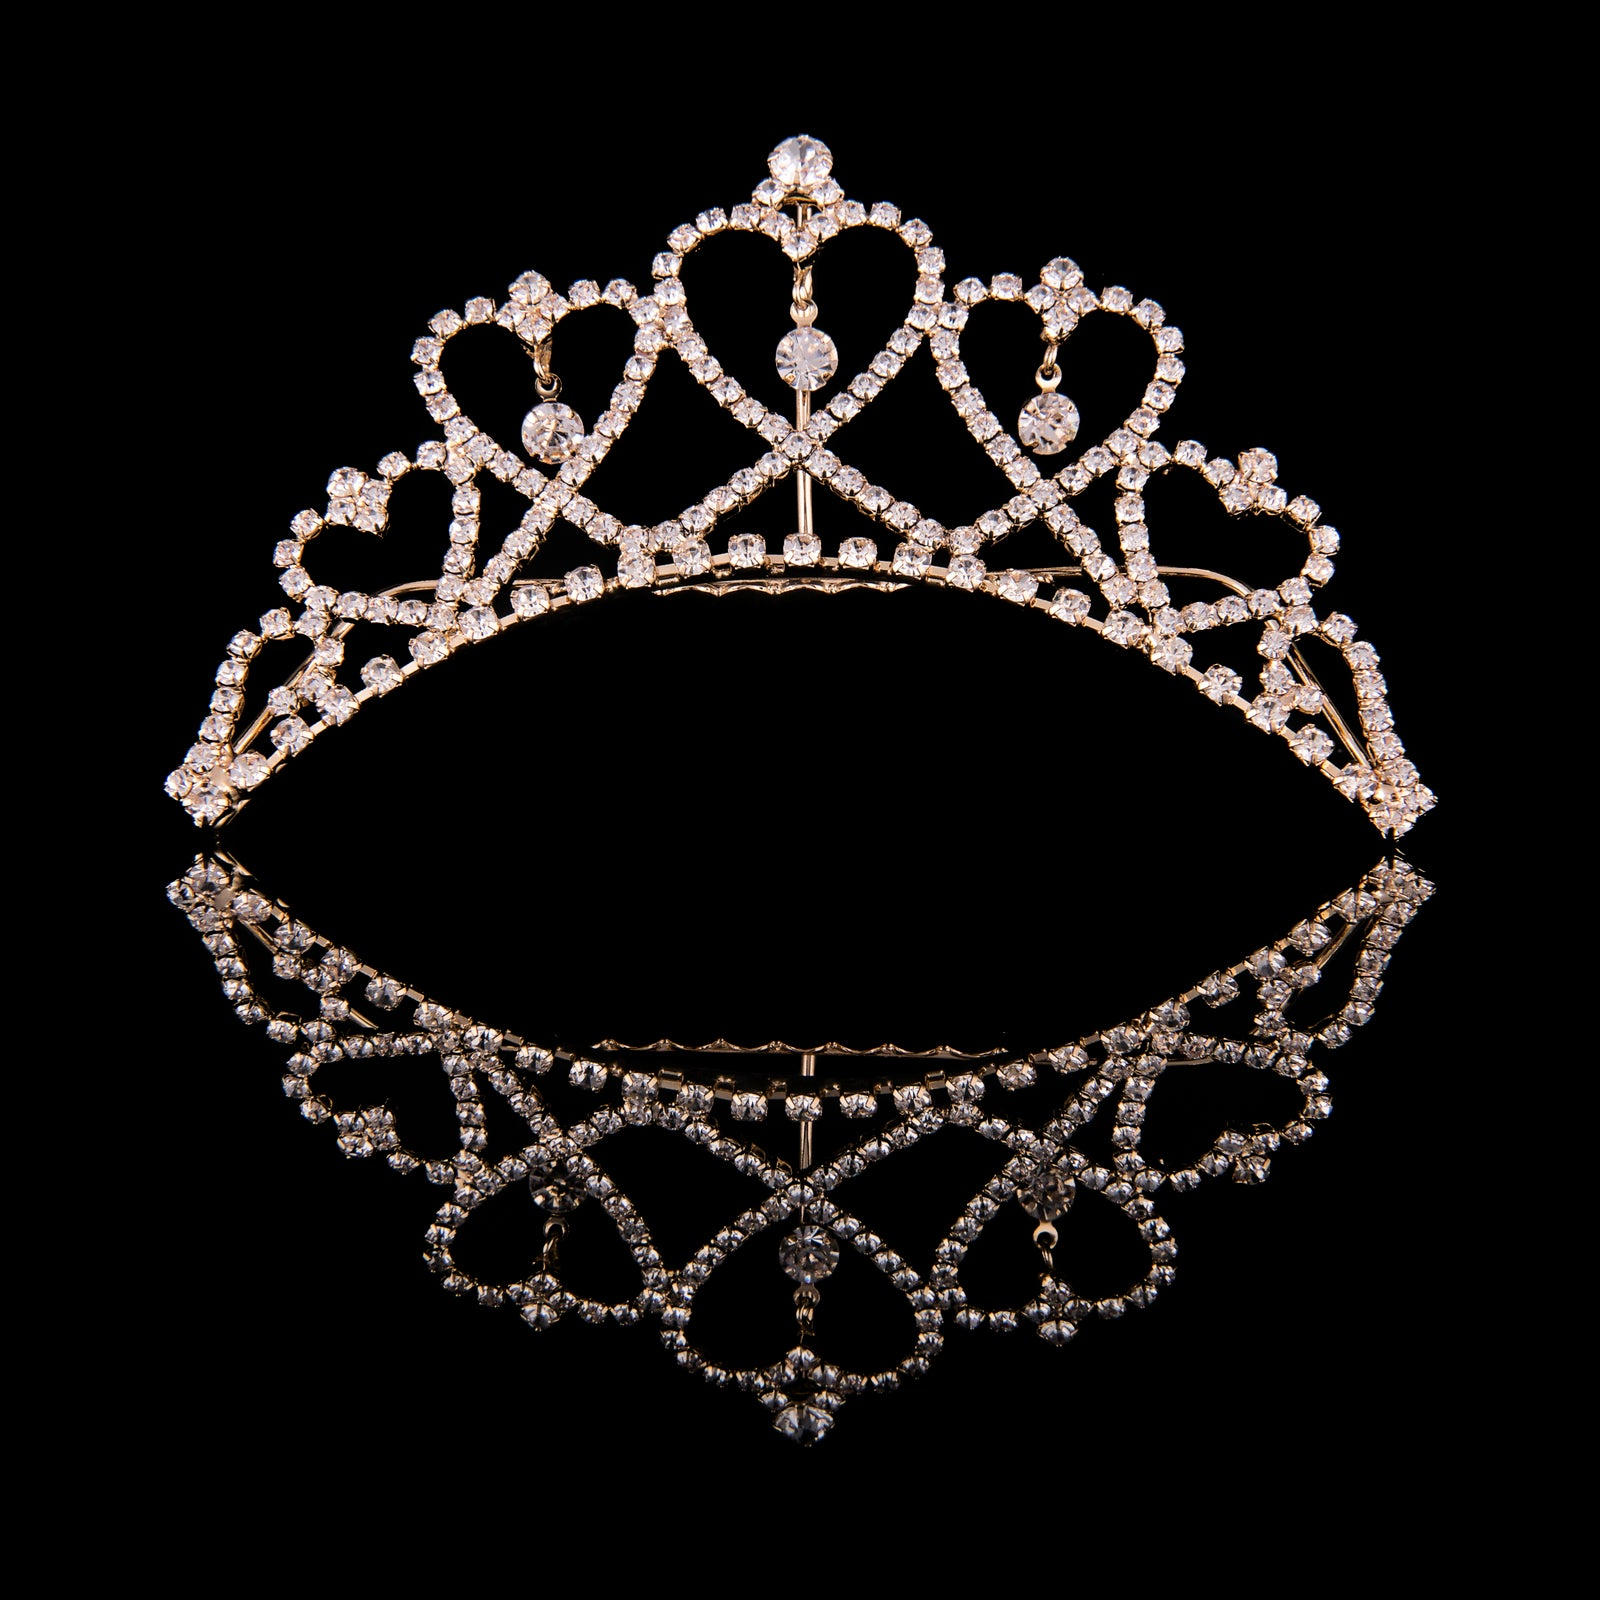 MAD ALLY MEDIUM HEART TIARA H40362